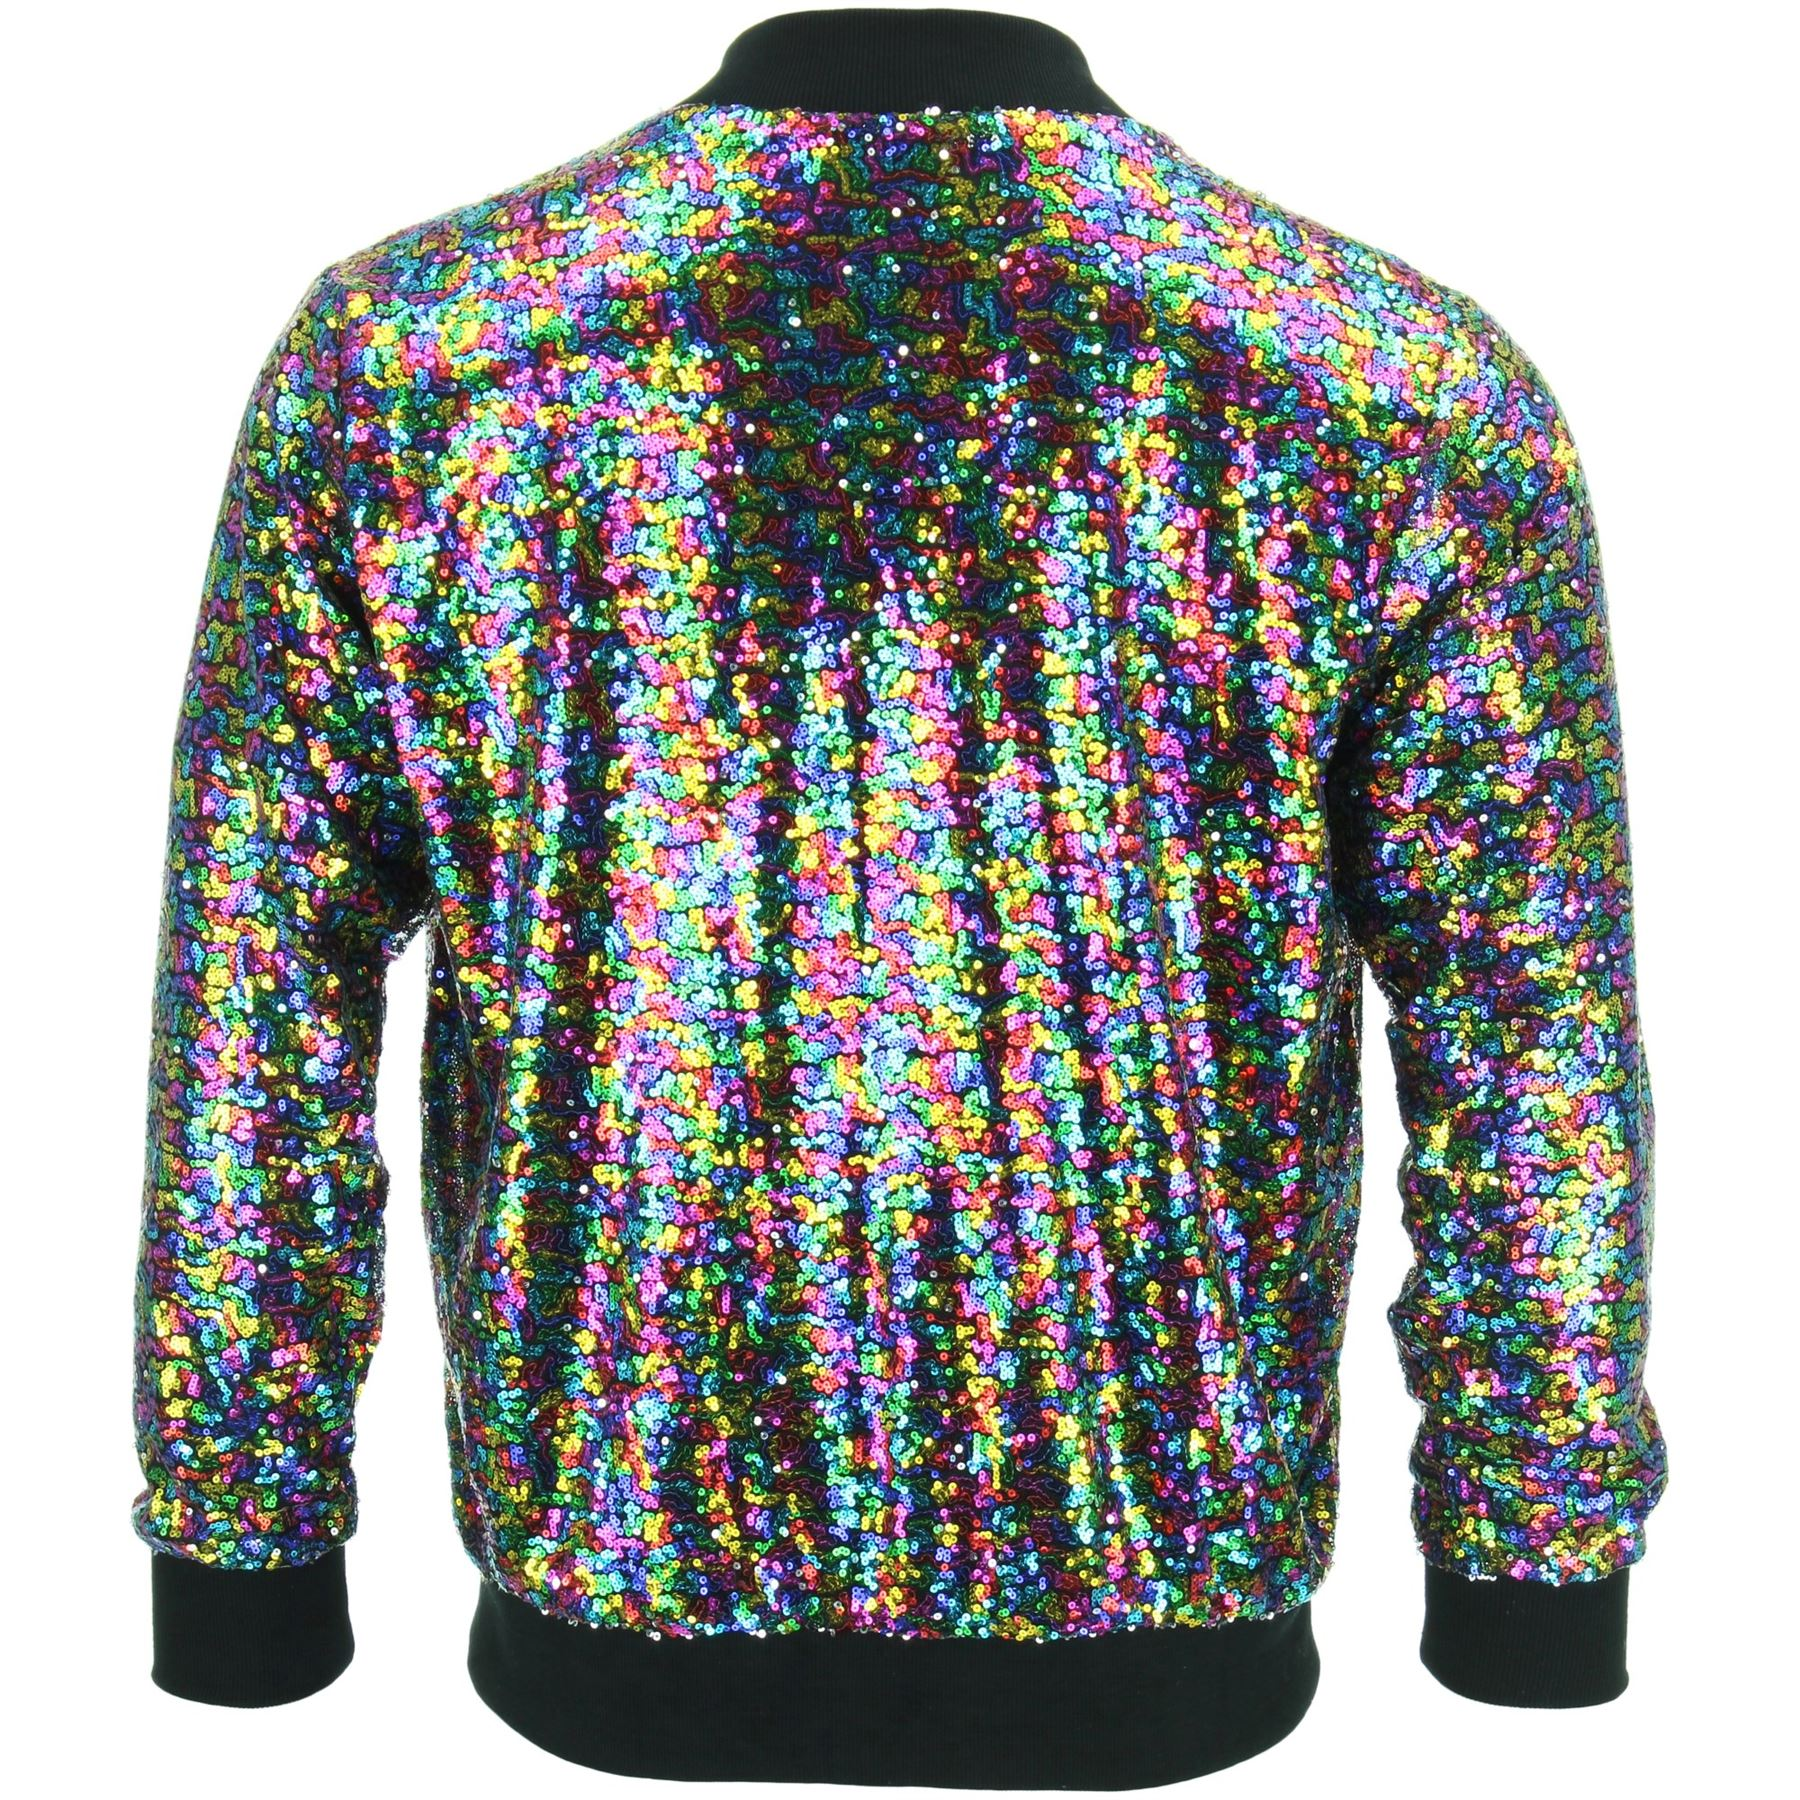 Details zu Bomber Jacket Shiny Sequin Glitter Sparkling Lame FIREFLY GOLD SILVER RAINBOW